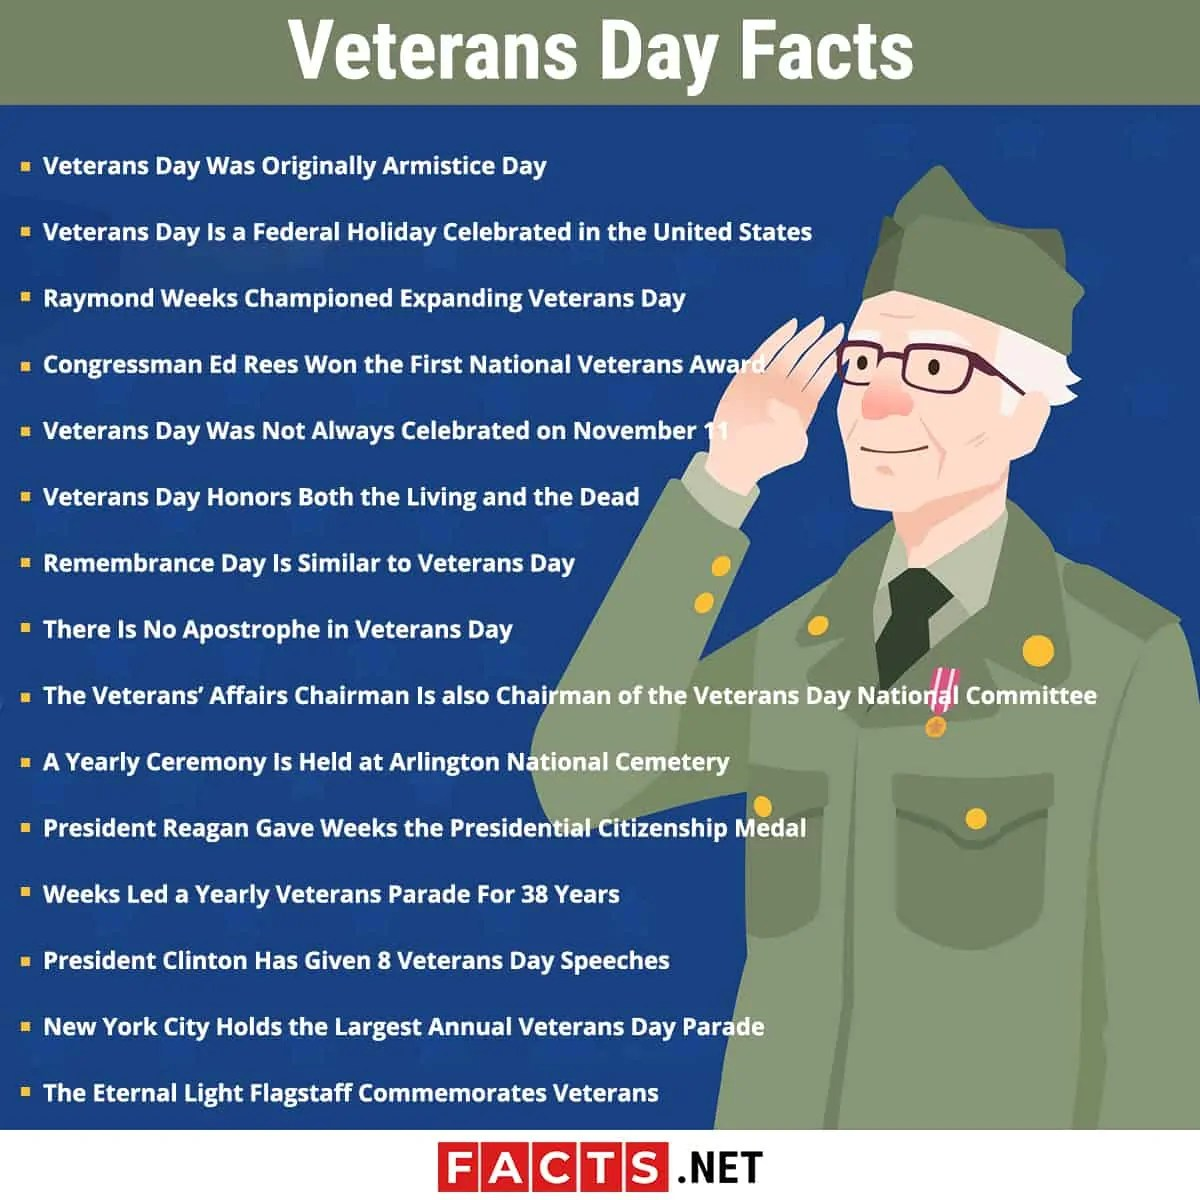 15 Veterans Day Facts